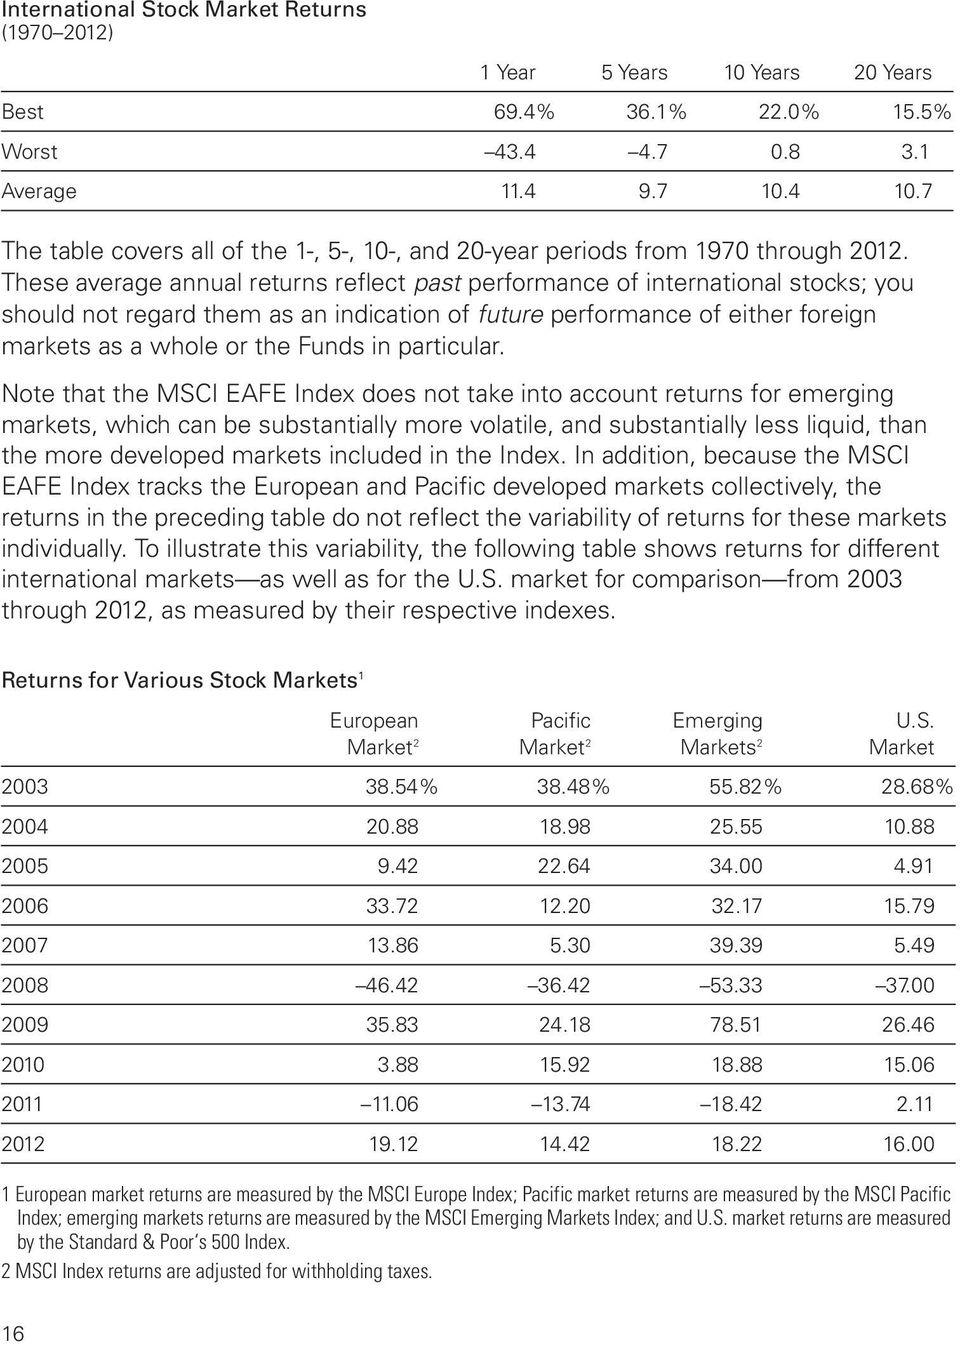 These average annual returns reflect past performance of international stocks; you should not regard them as an indication of future performance of either foreign markets as a whole or the Funds in